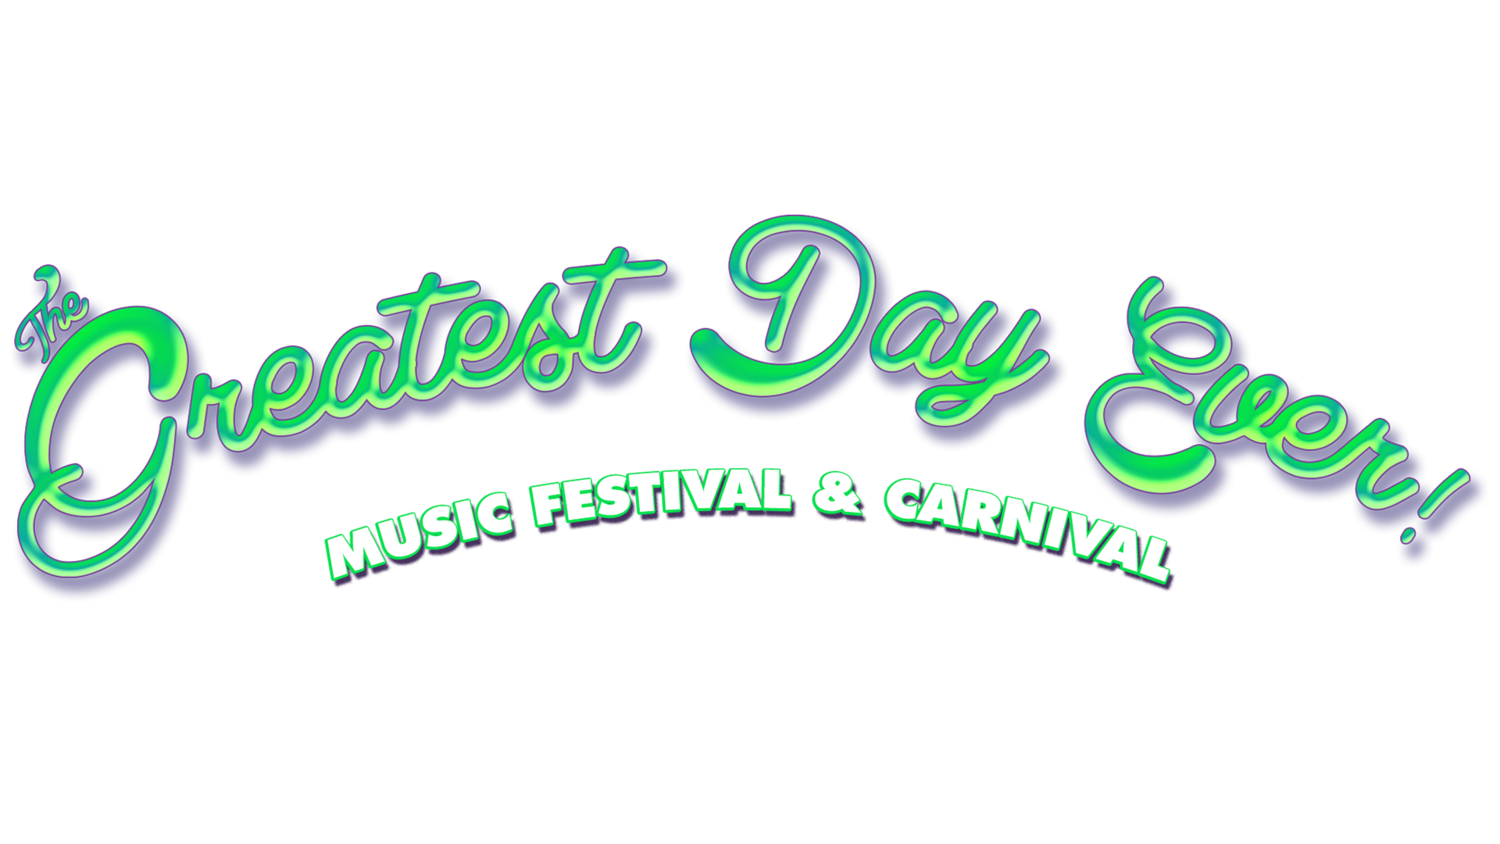 The Greatest Day Ever! Music Festival & Carnival